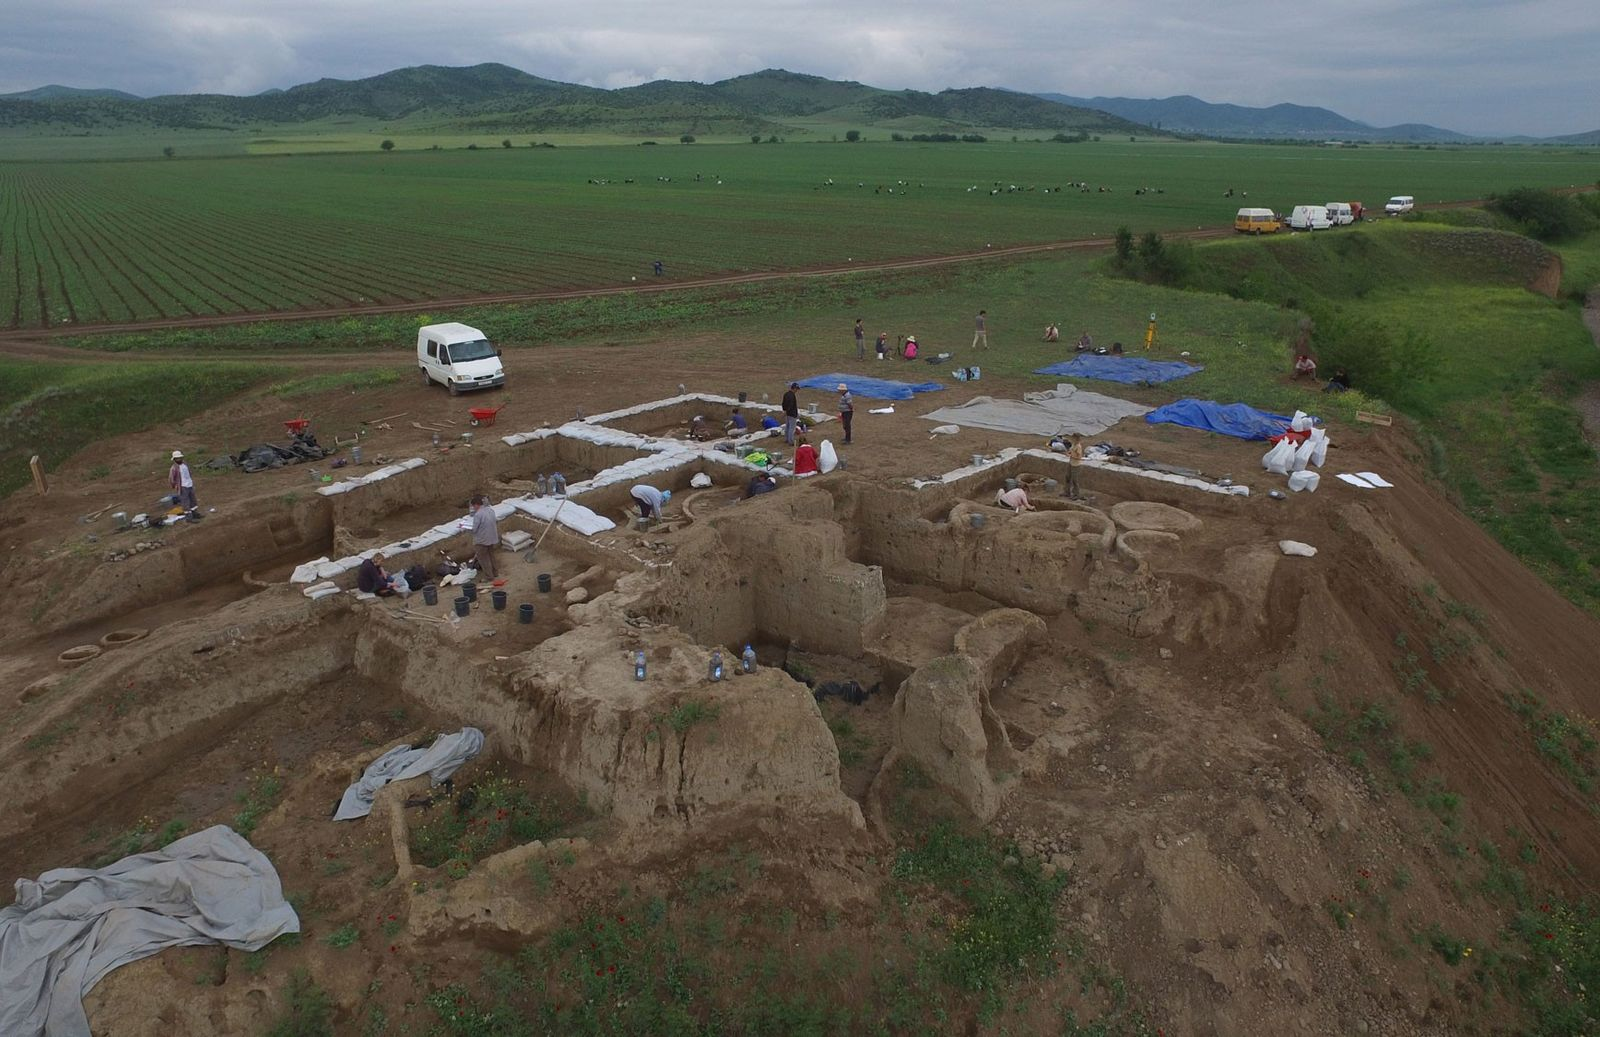 Oldest Evidence of Winemaking Discovered at 8,000-Year-Old Village